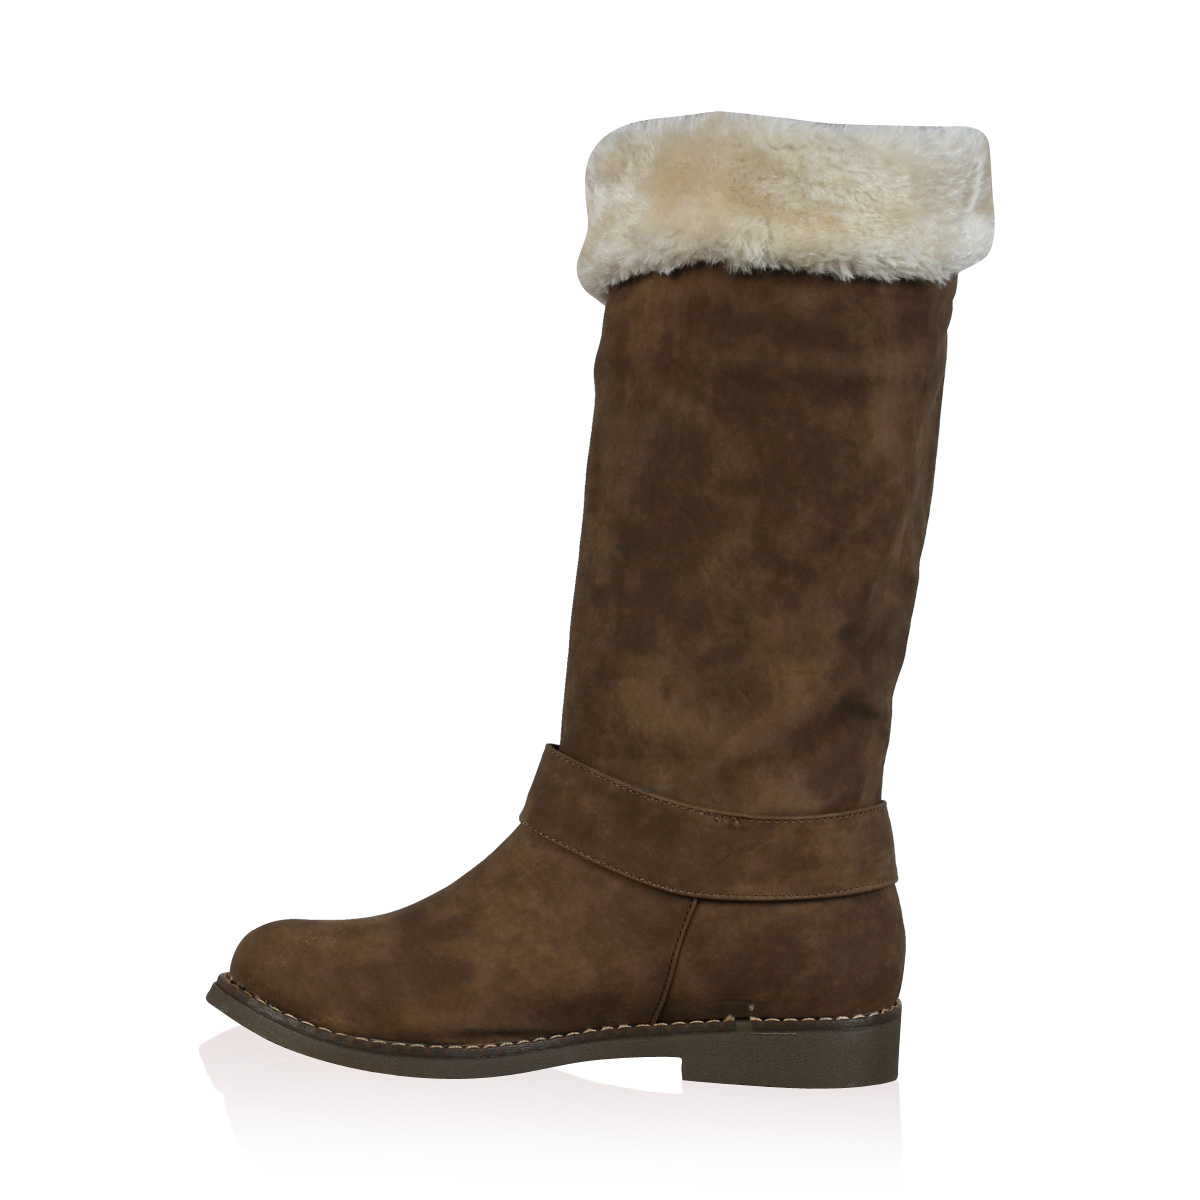 new womens brown faux fur lined winter calf length